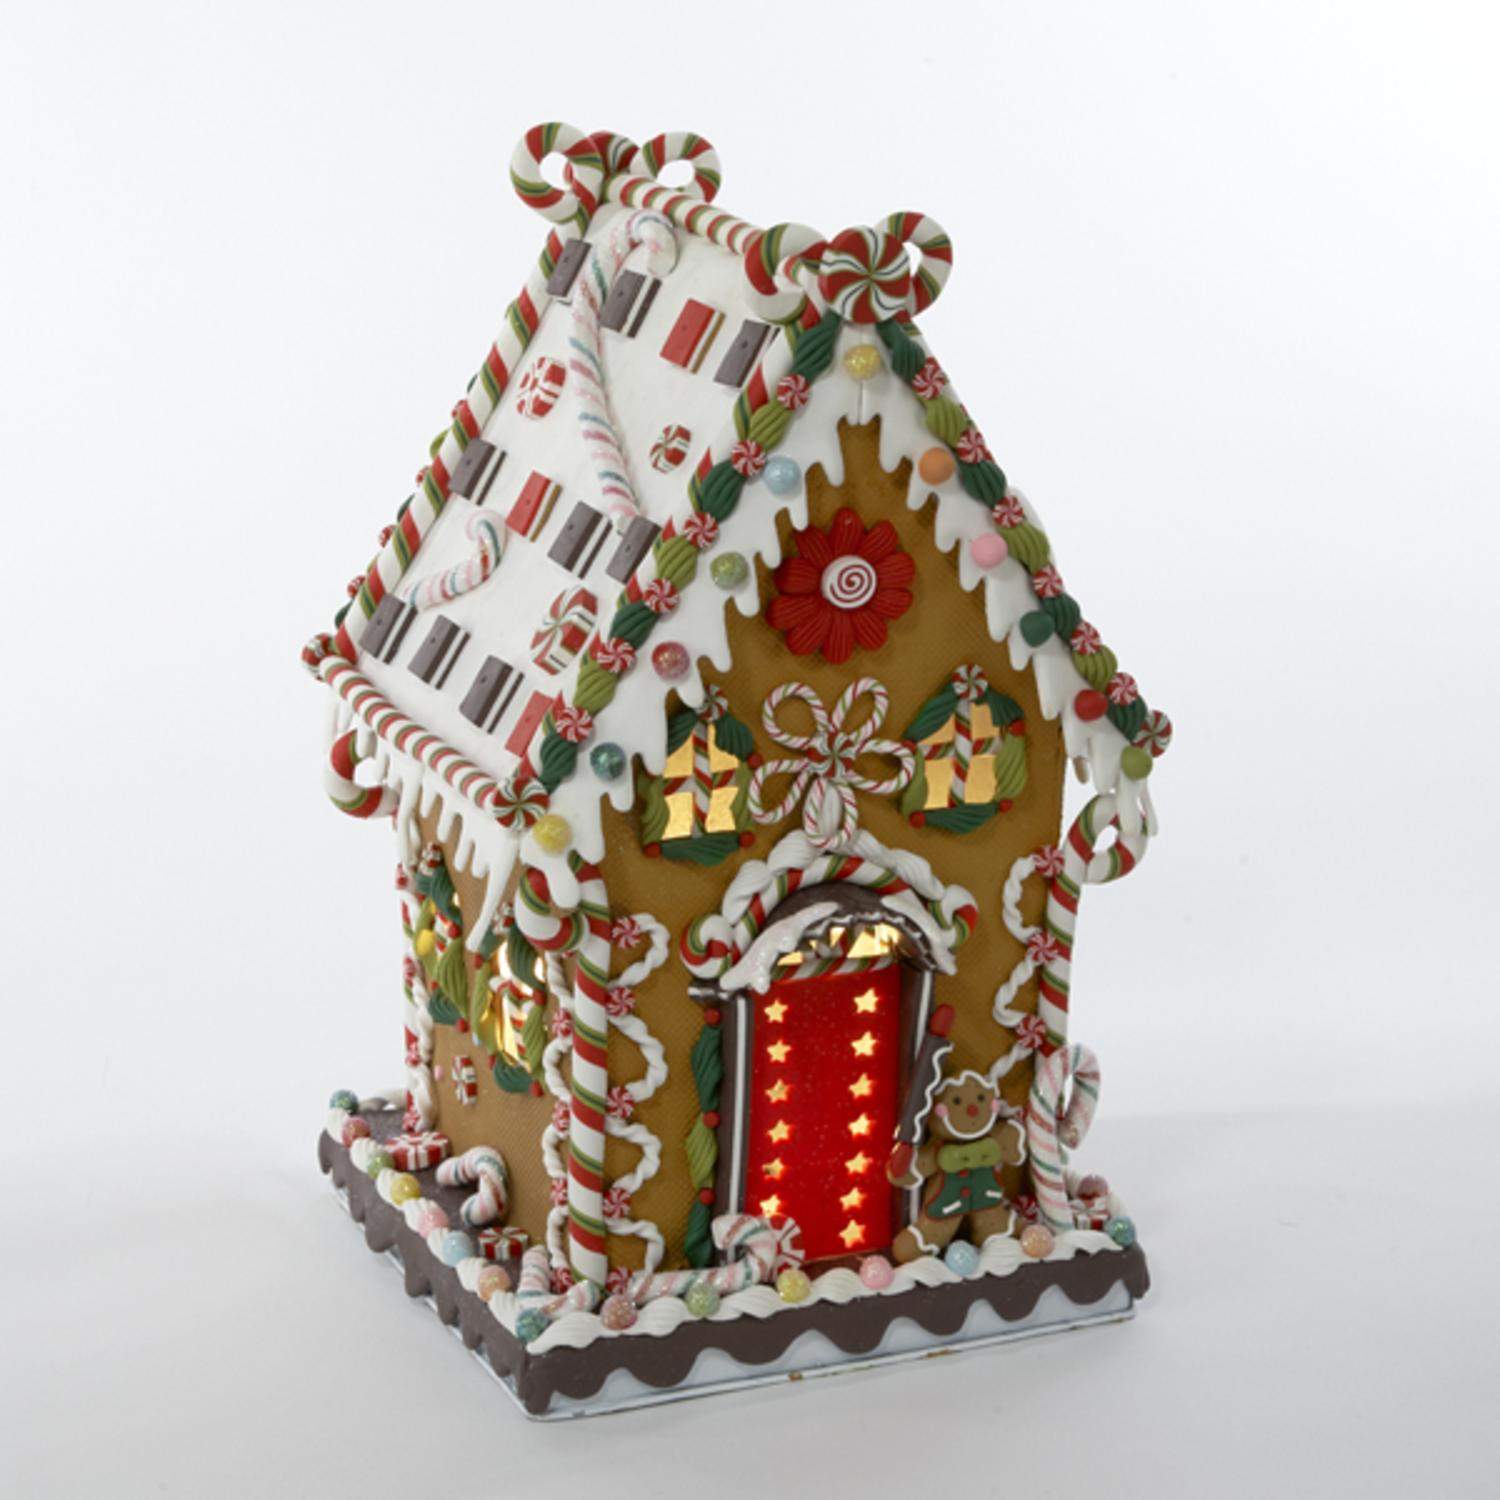 1325 gingerbread kisses lighted cookie and candy house christmas decoration walmartcom